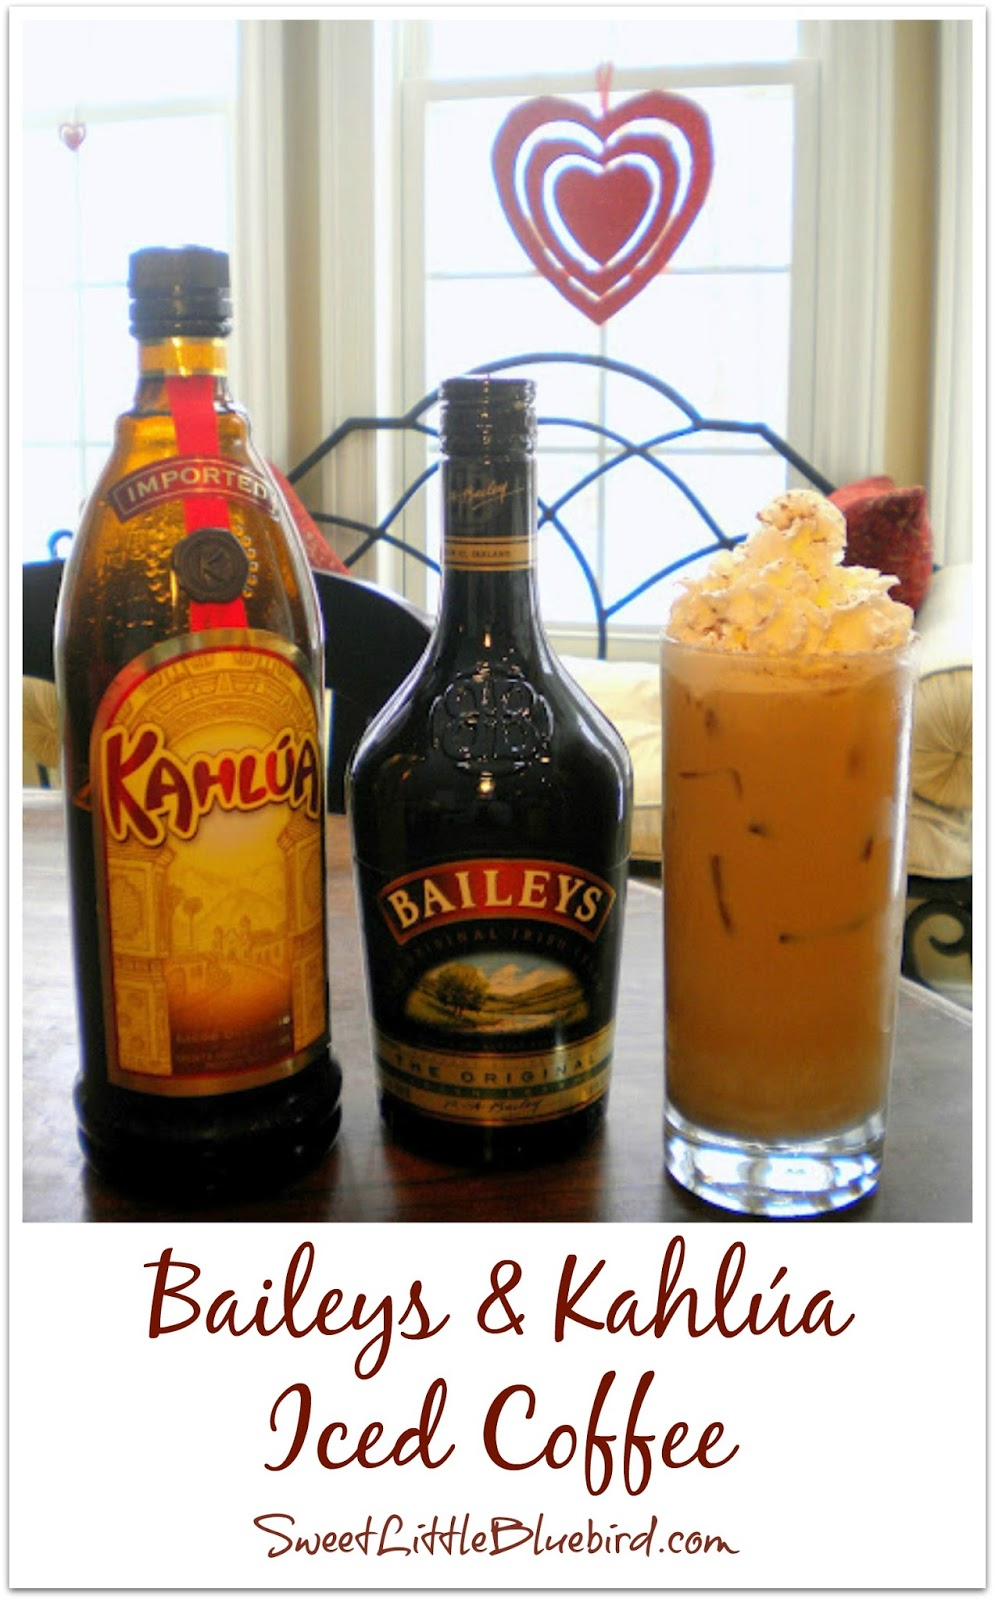 Baileys & Kahlúa Iced Coffee and Iced Mocha!